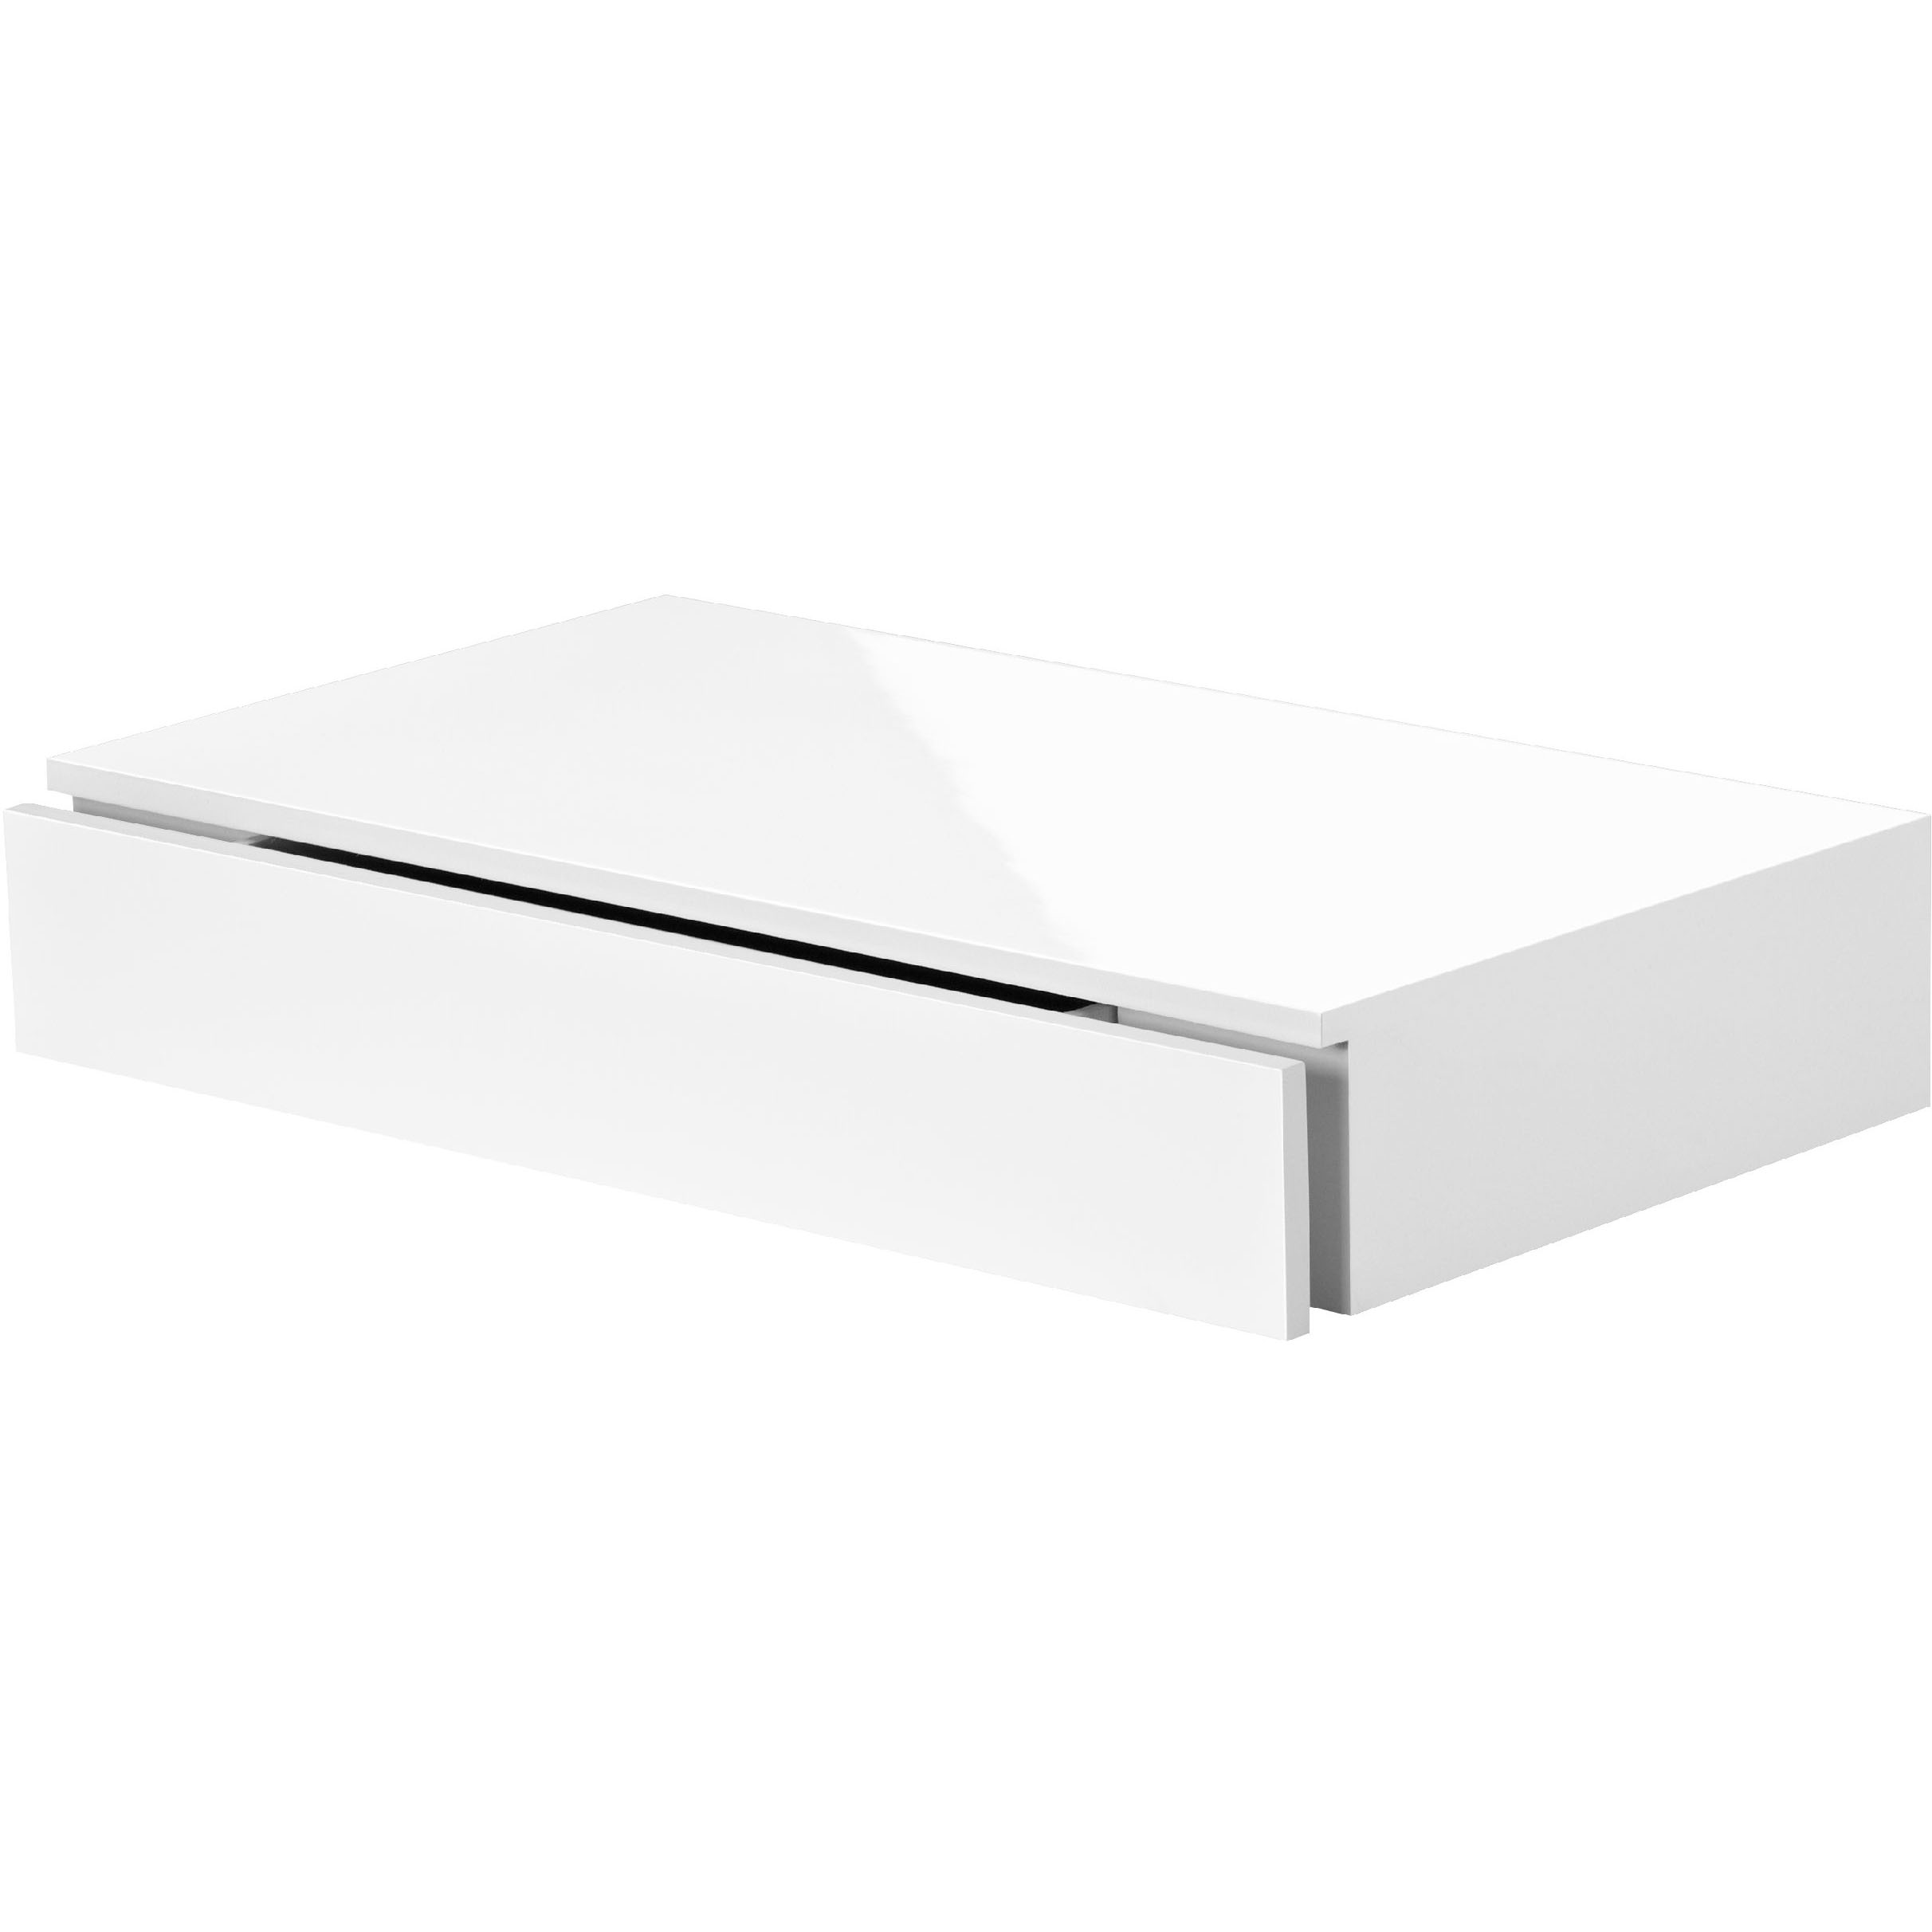 floating shelf with drawer mastershelf cassetto wei hochglanz high gloss white ceiling height shelves wooden hat rack wall hexagon ikea sit bathroom sinks kitchen stand alone